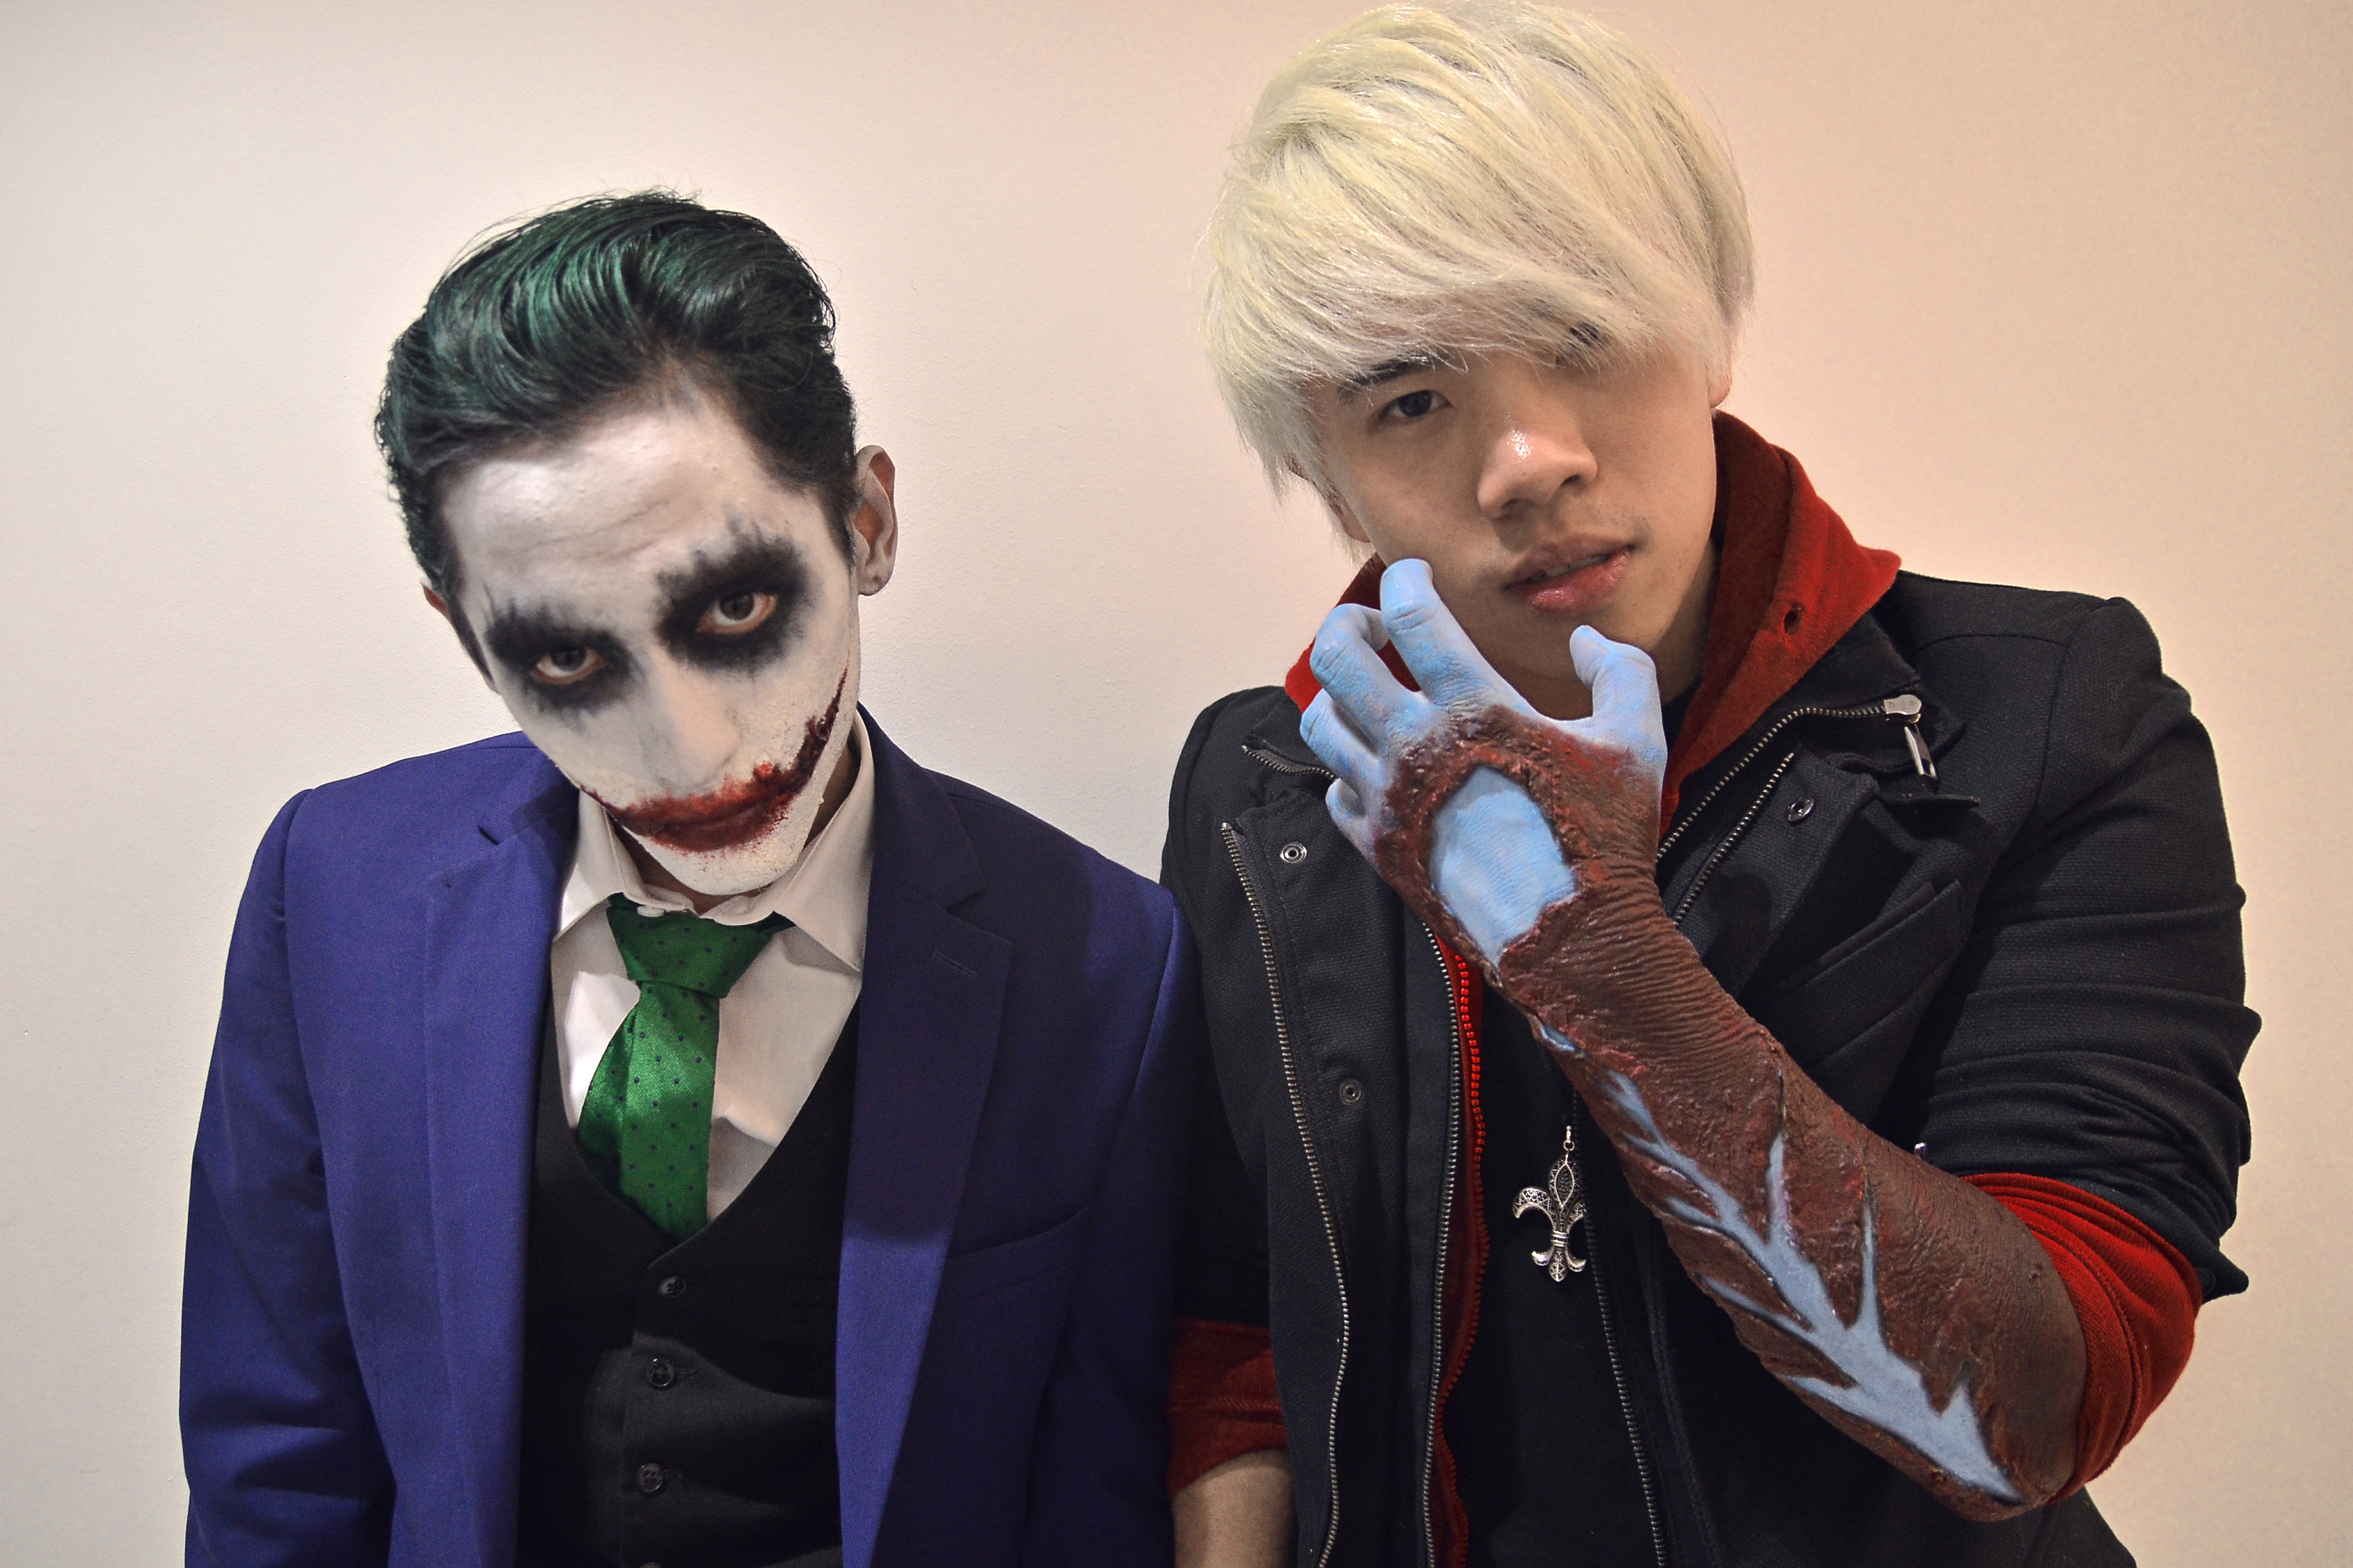 The Joker & Nero